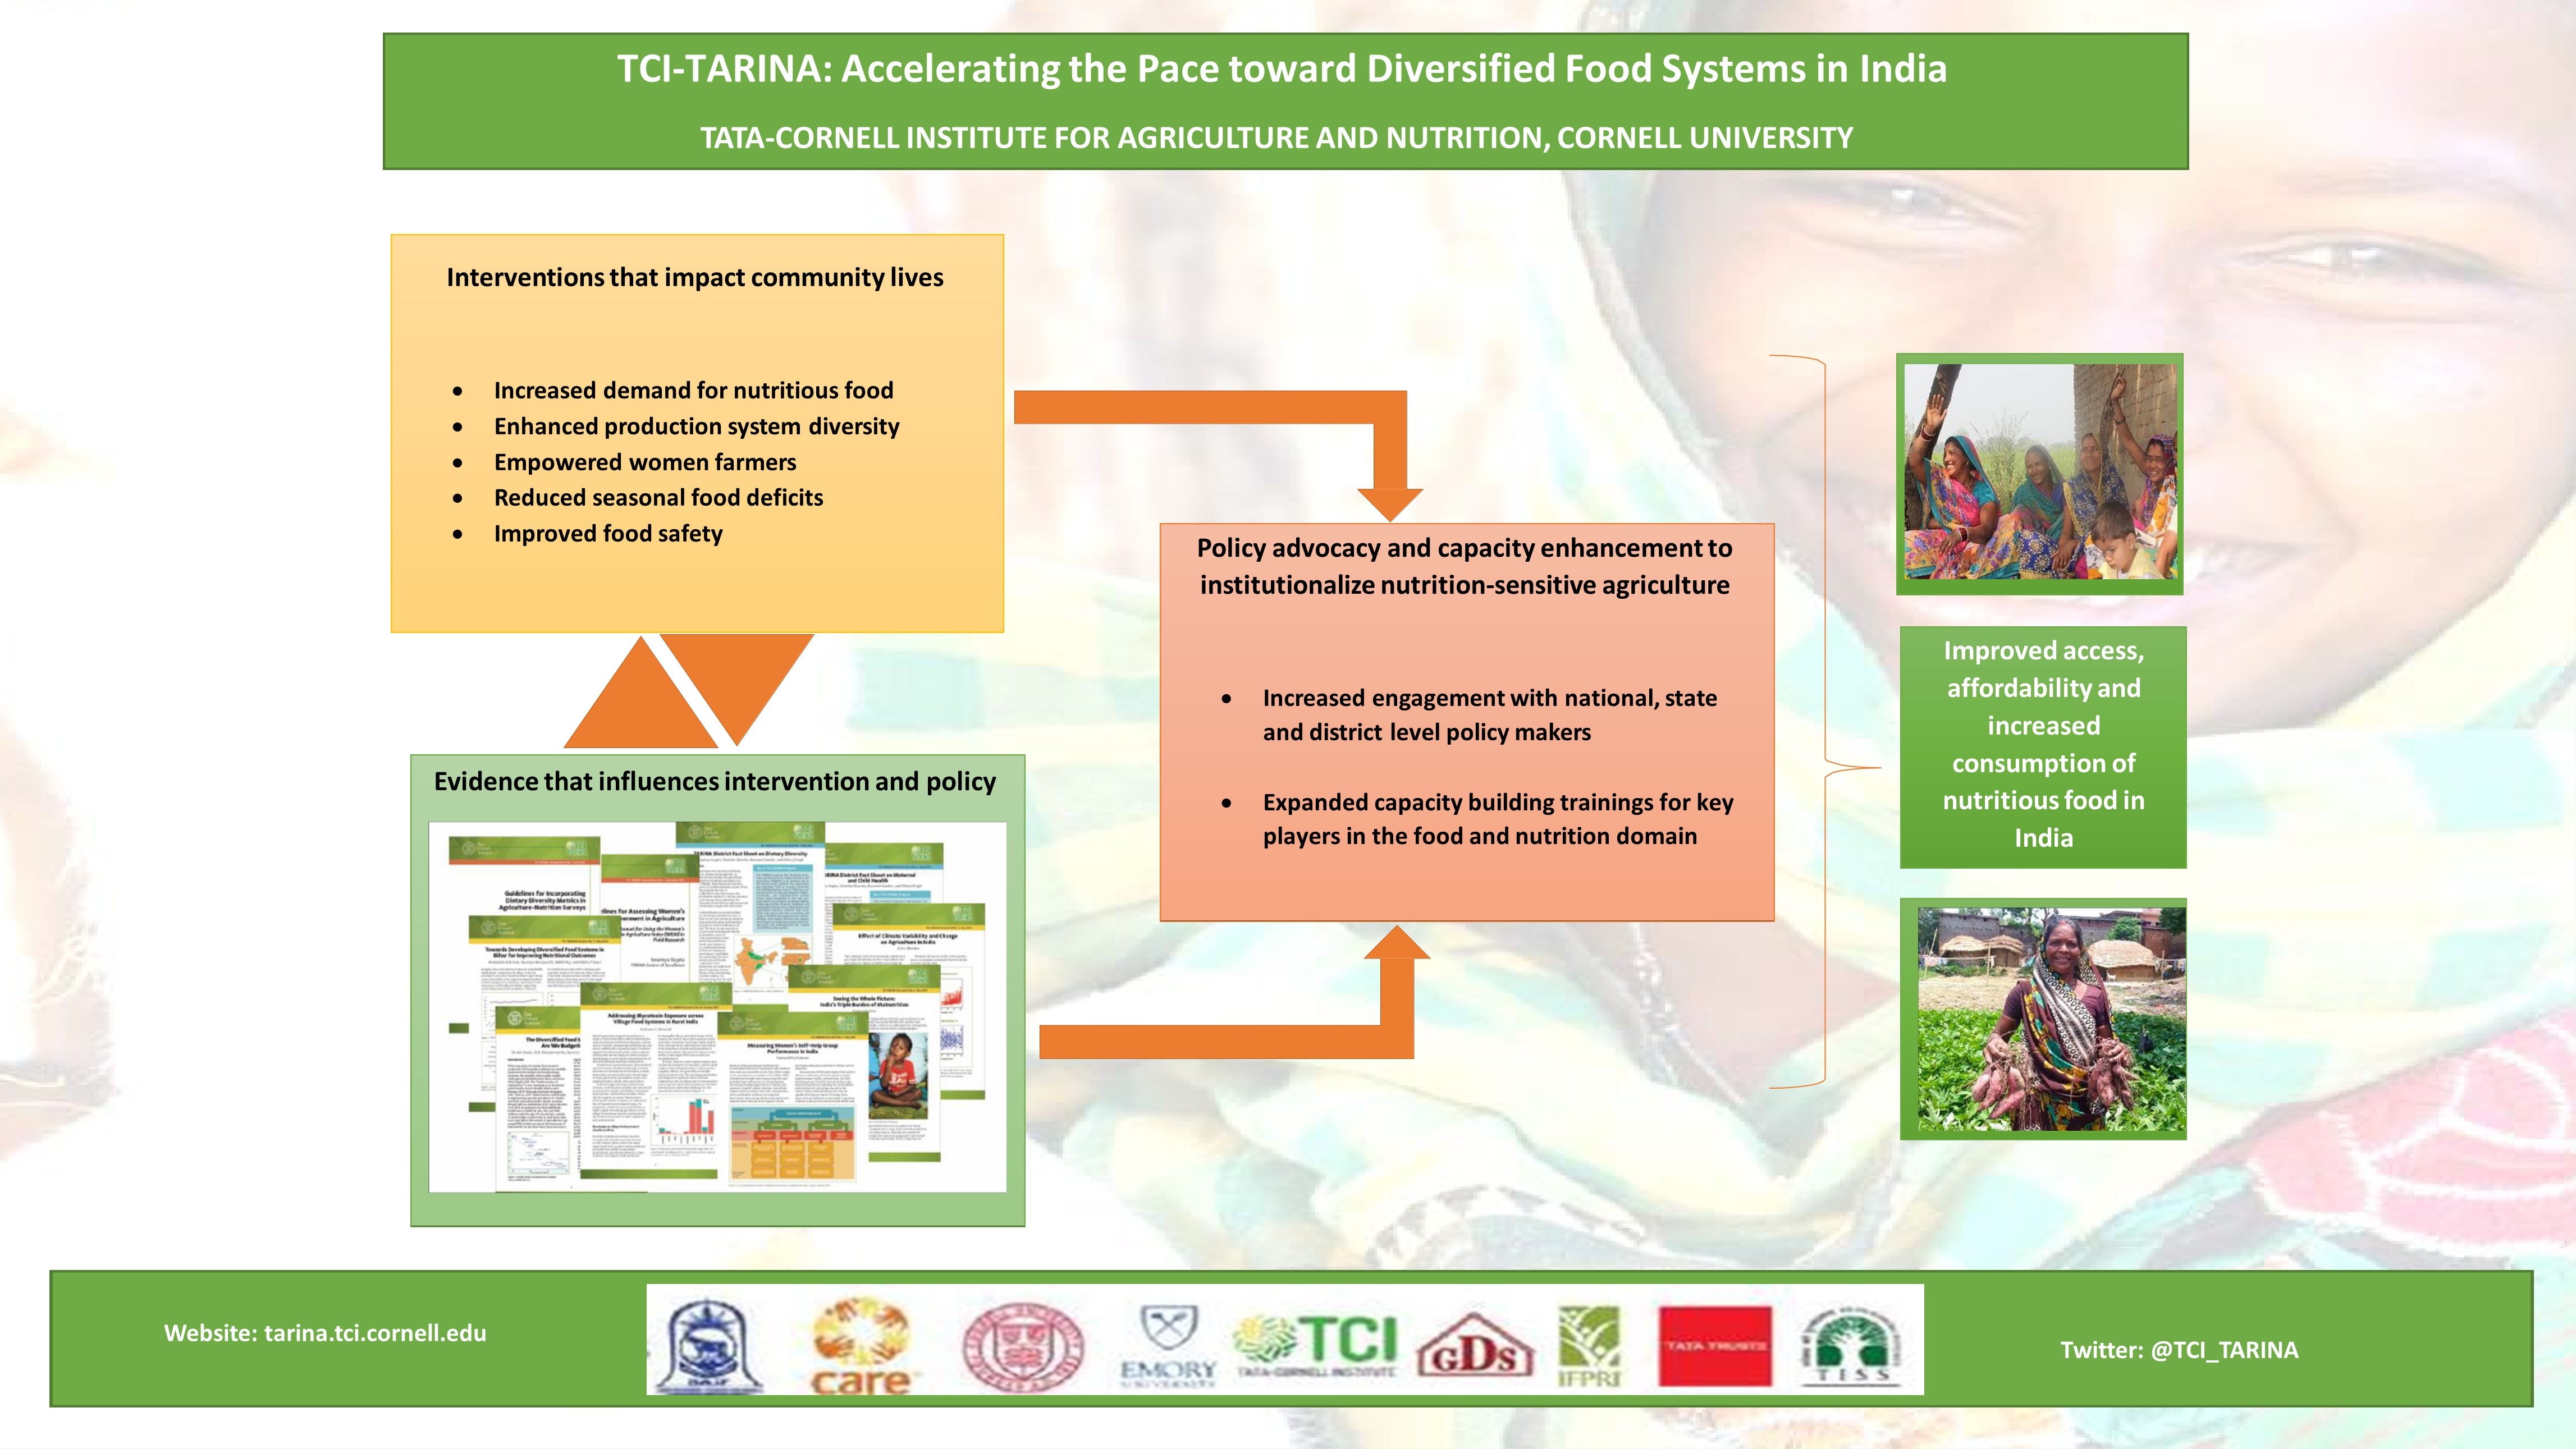 TCI-TARINA: Accelerating the Pace toward Diversified Food Systems in India